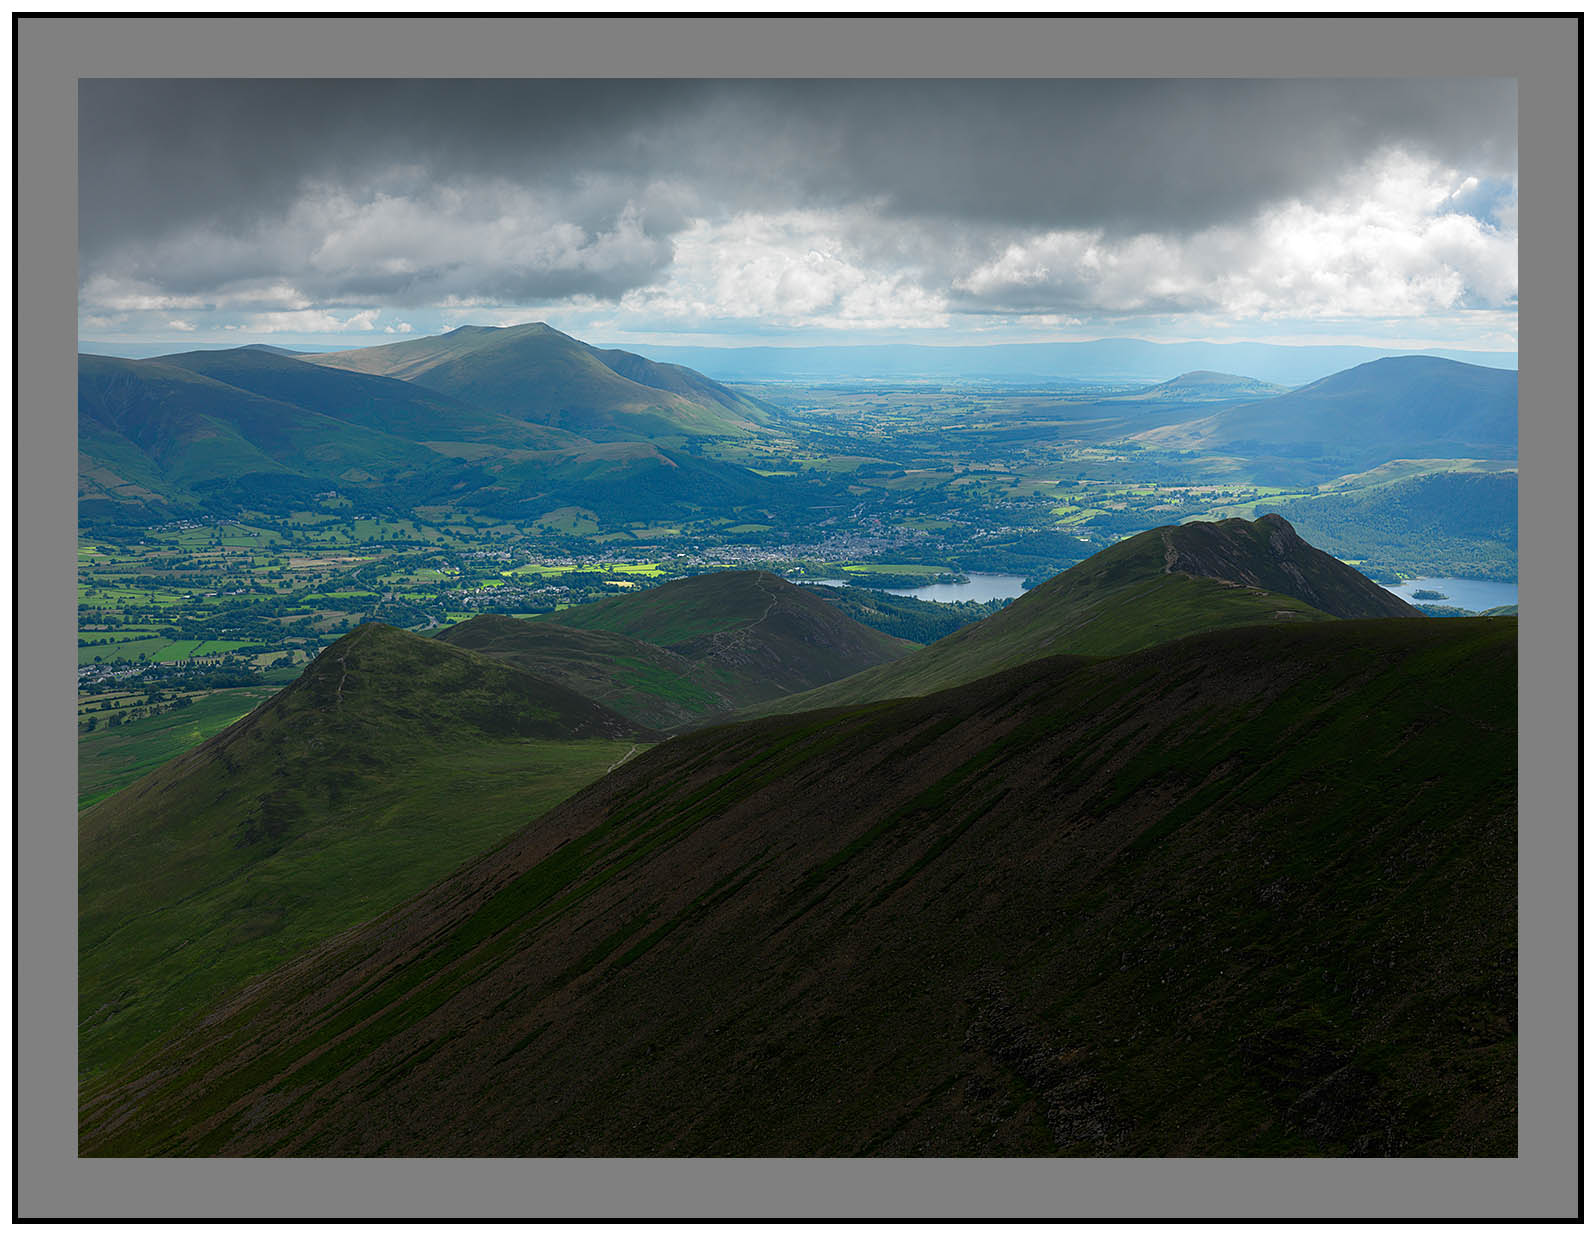 A 5159 Blencathra and the Vale of Keswick from Crag Hill